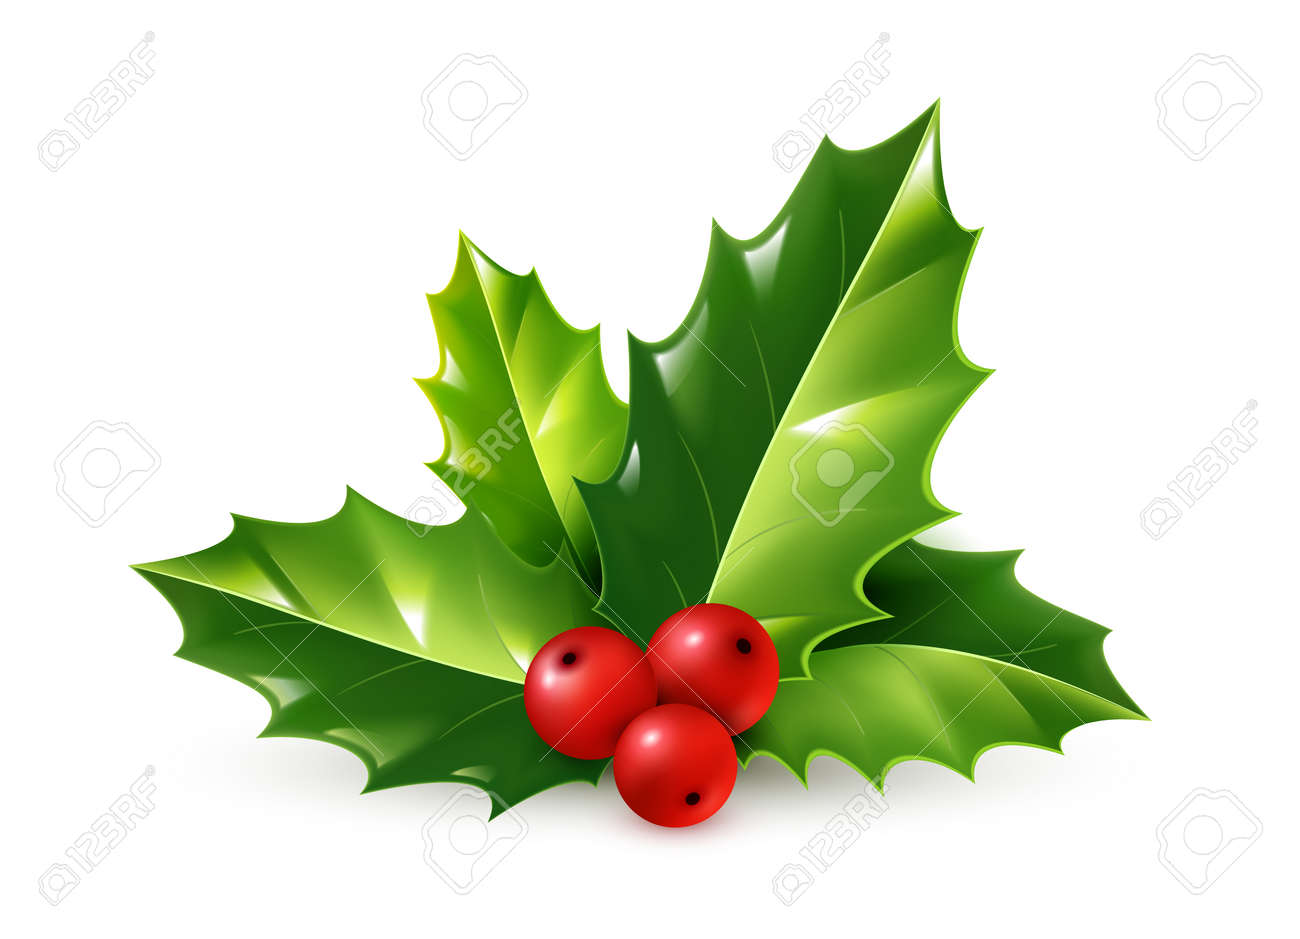 Christmas Leaves.Realistic Holly Christmas Ornament Holly Green Leaves And Red